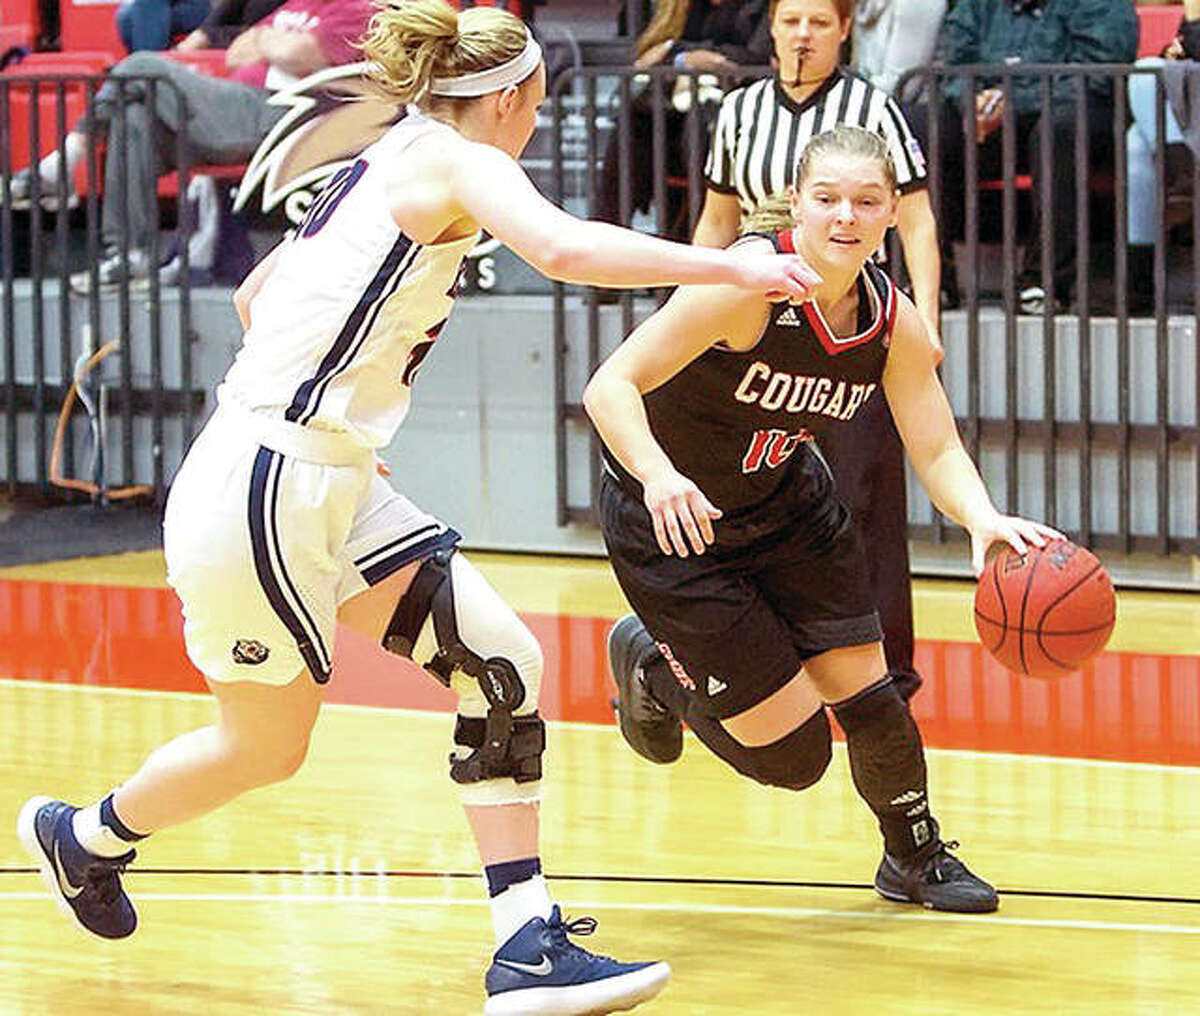 SIUE's Elina Berzina, right, scored a career-high 12 points in her team's 86-64 loss to Belmont College Saturday in Nashville, Tenn.